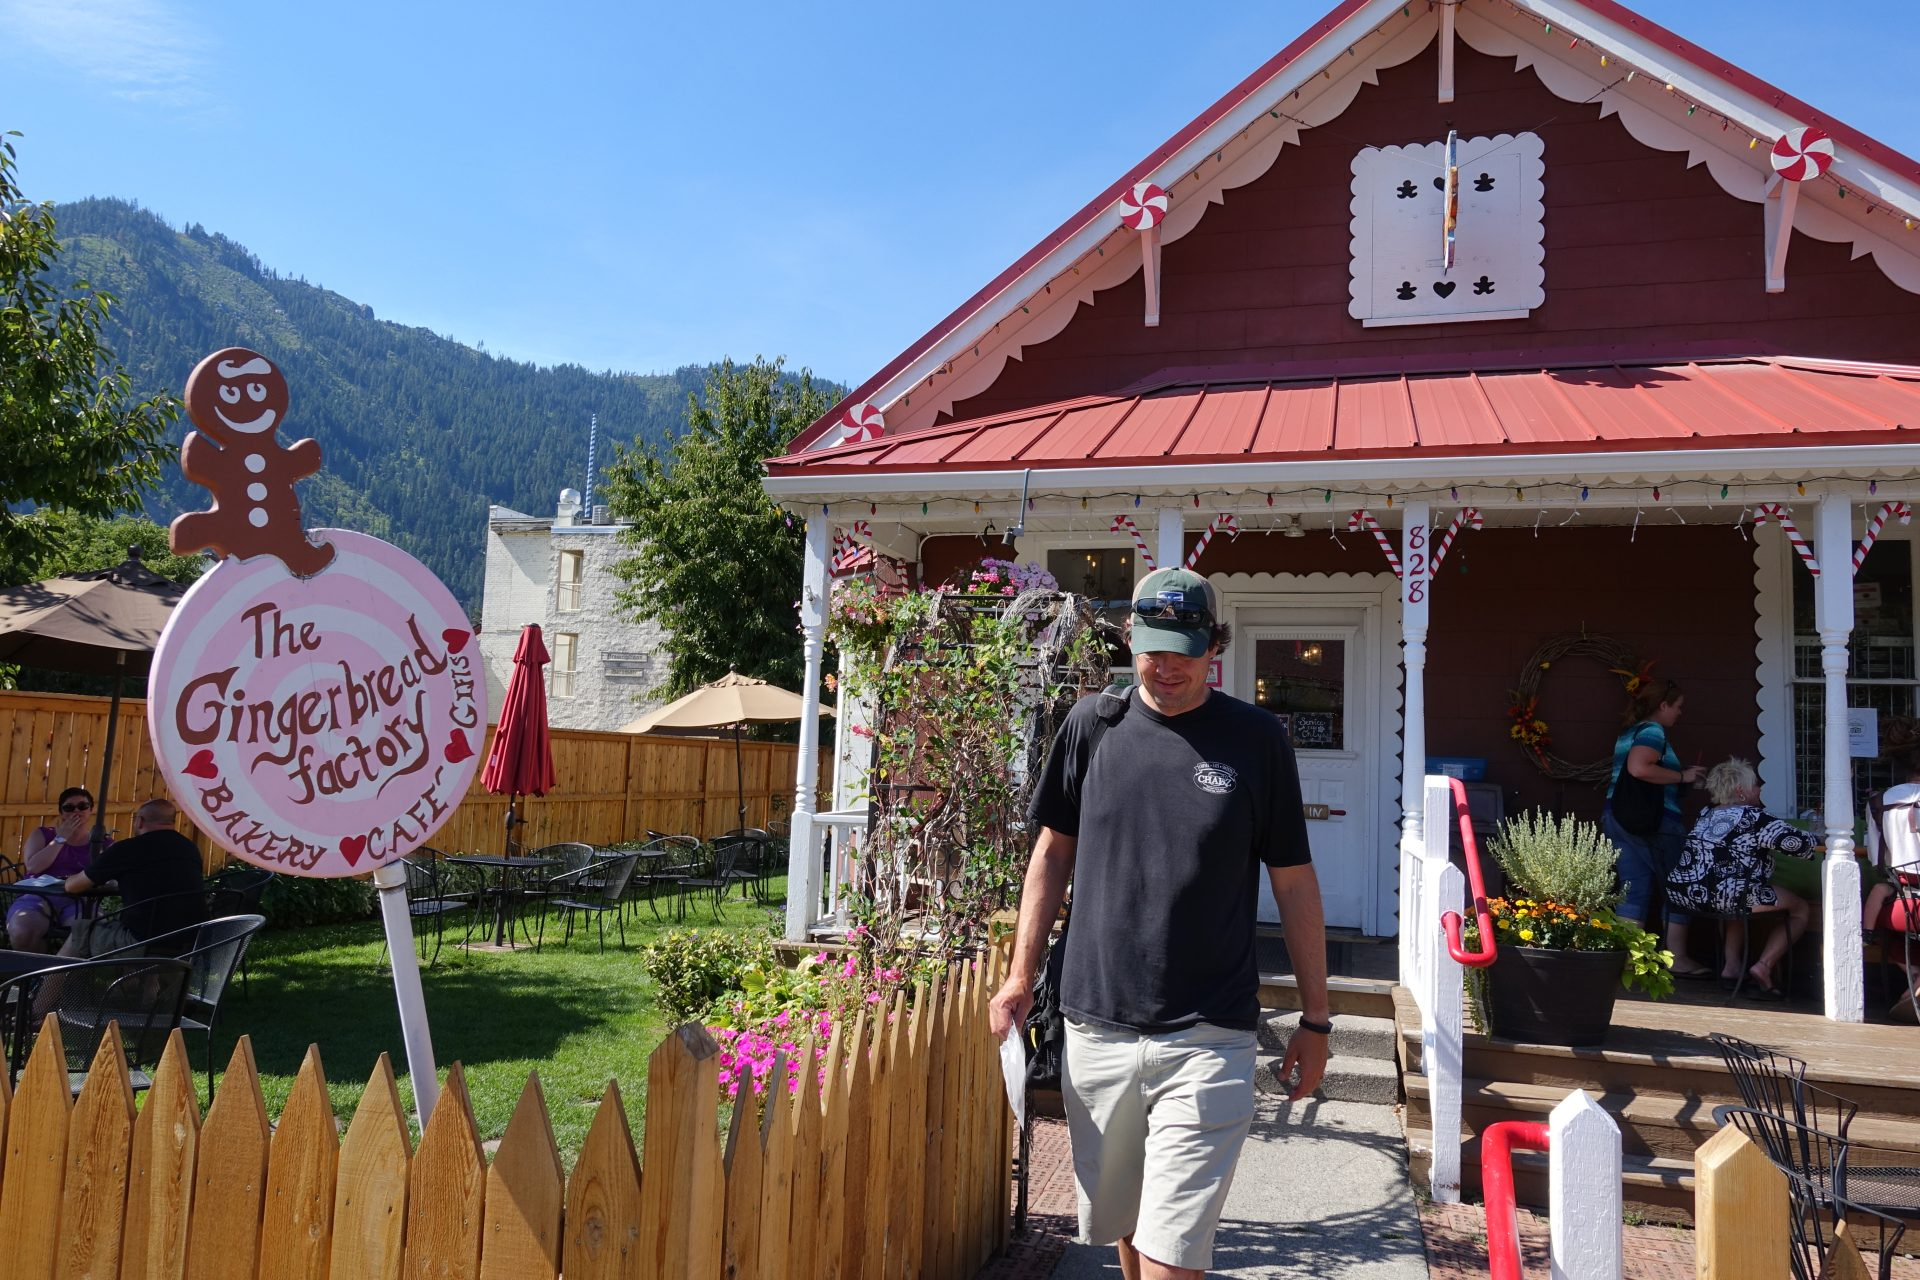 things to see in eastern Washington Gingerbread Factory in Leavenworth Washington. Things to do with kids in Washington